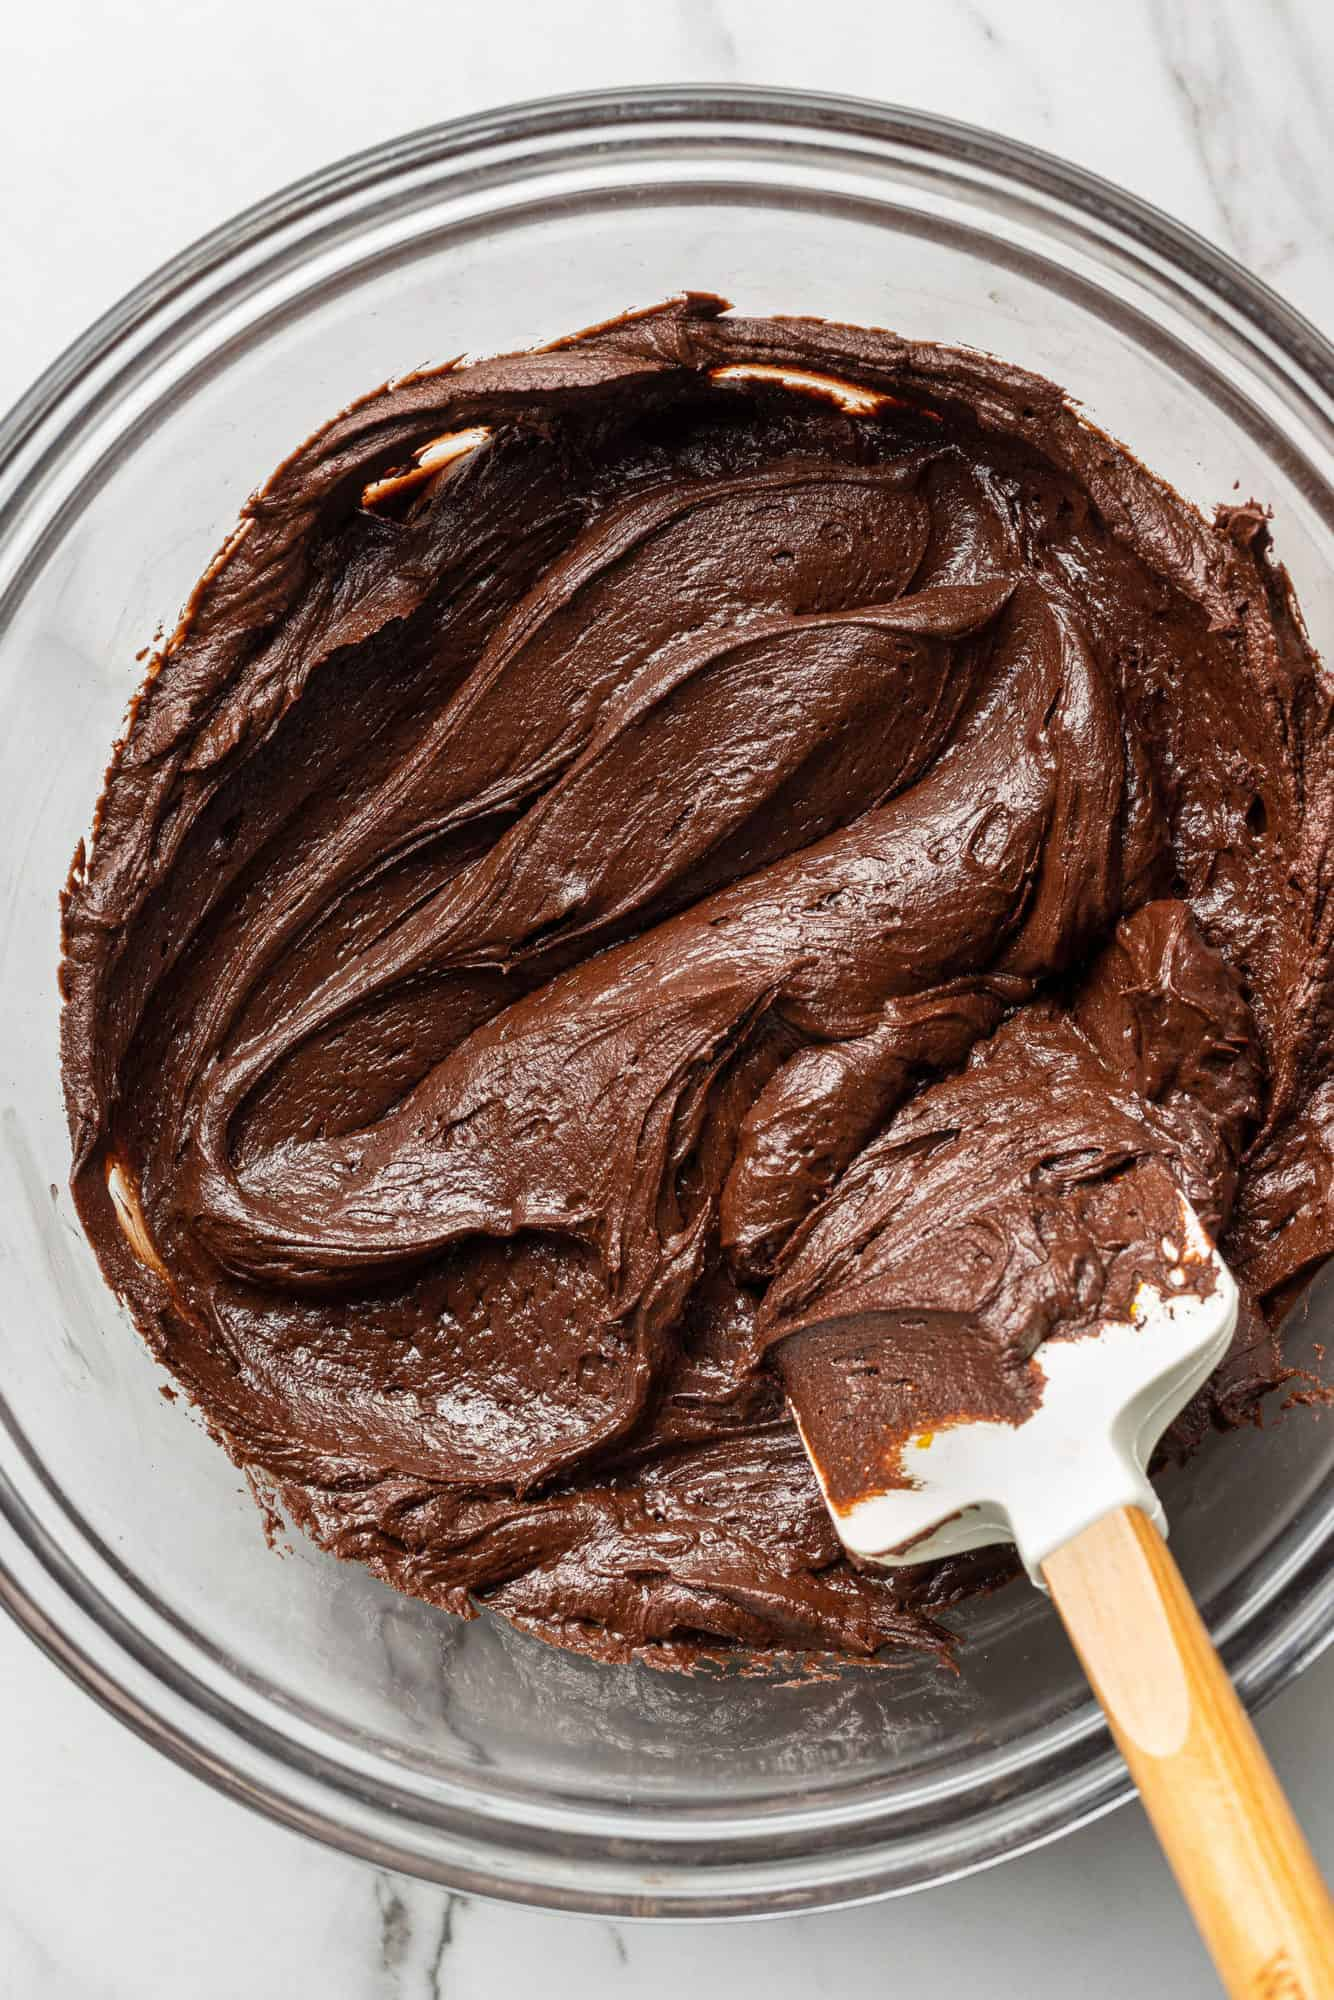 Chocolate frosting in a bowl with a spatula.